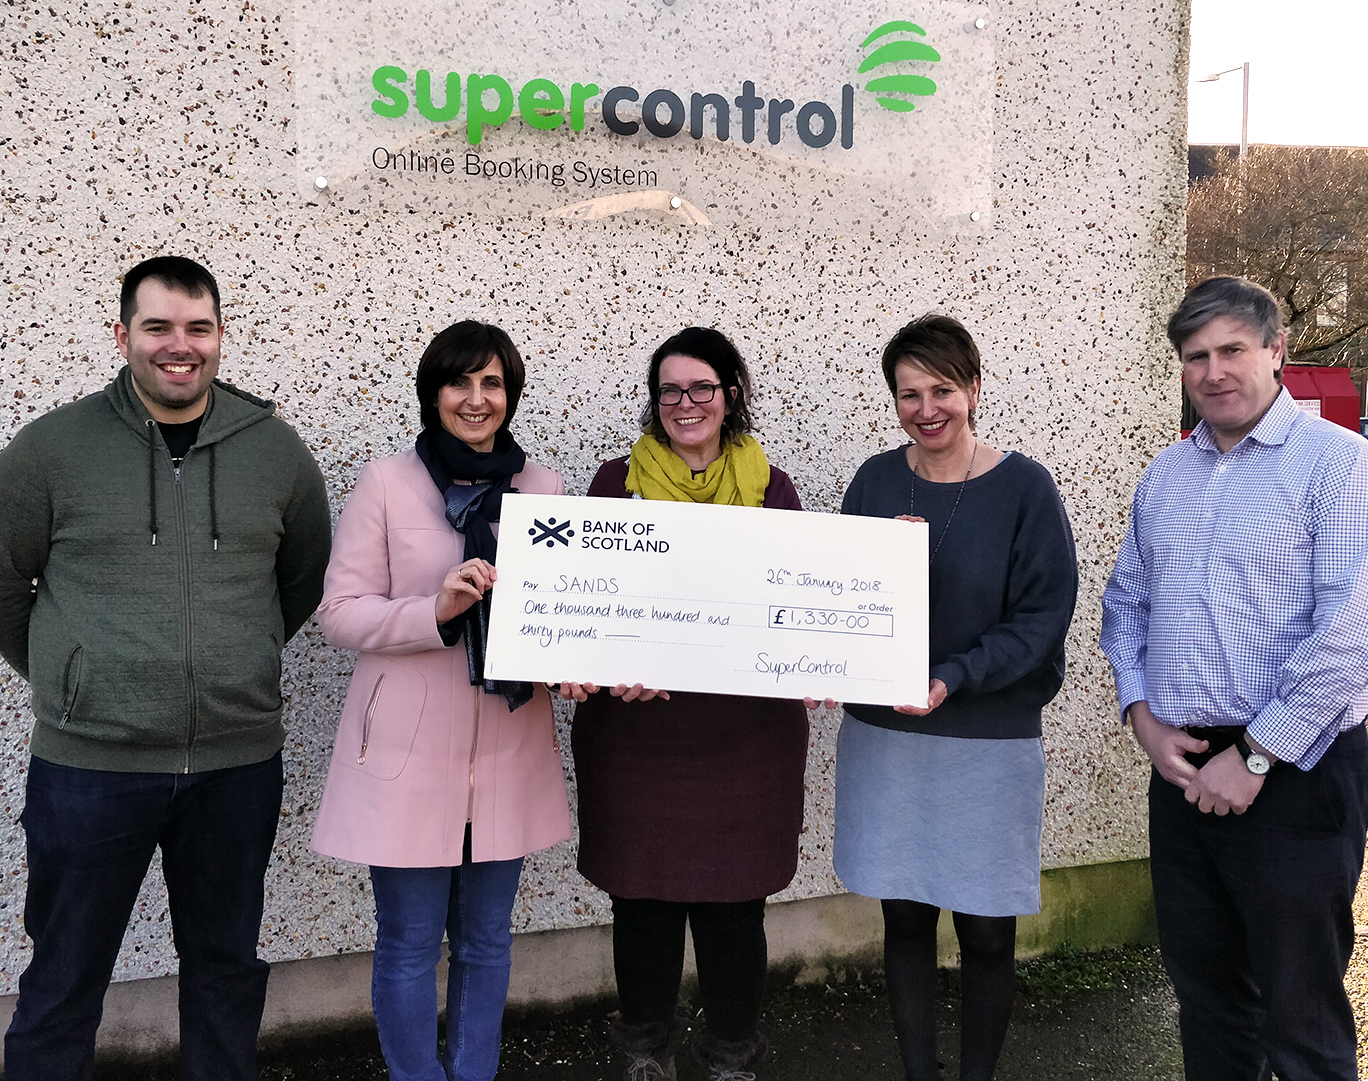 SuperControl Raises £1,330 for Sands – Stillbirth and neonatal death charity